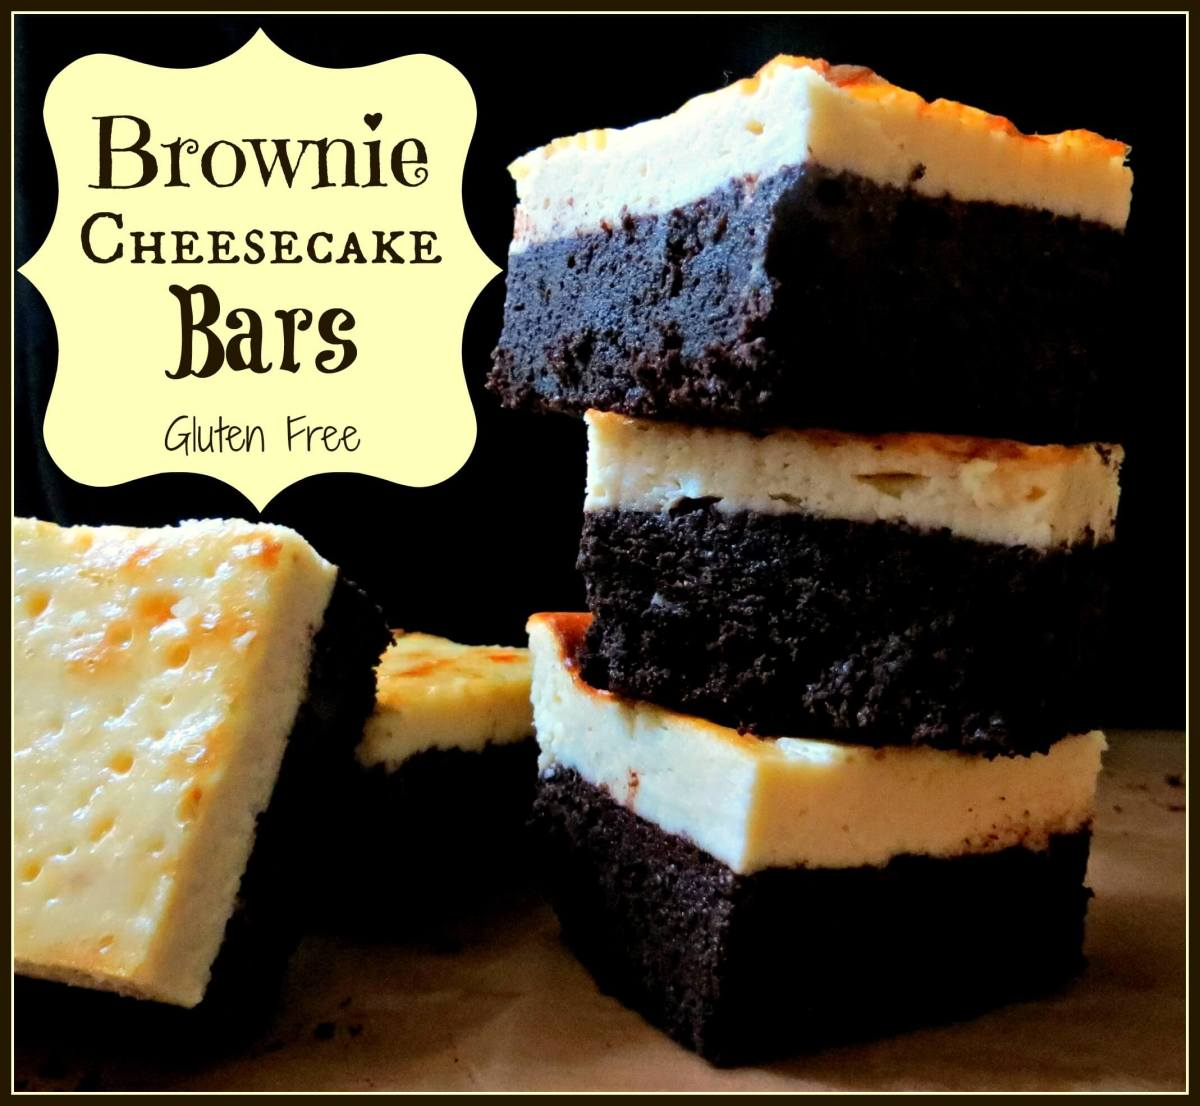 Brownie Cheesecake Bars (Grain Free)